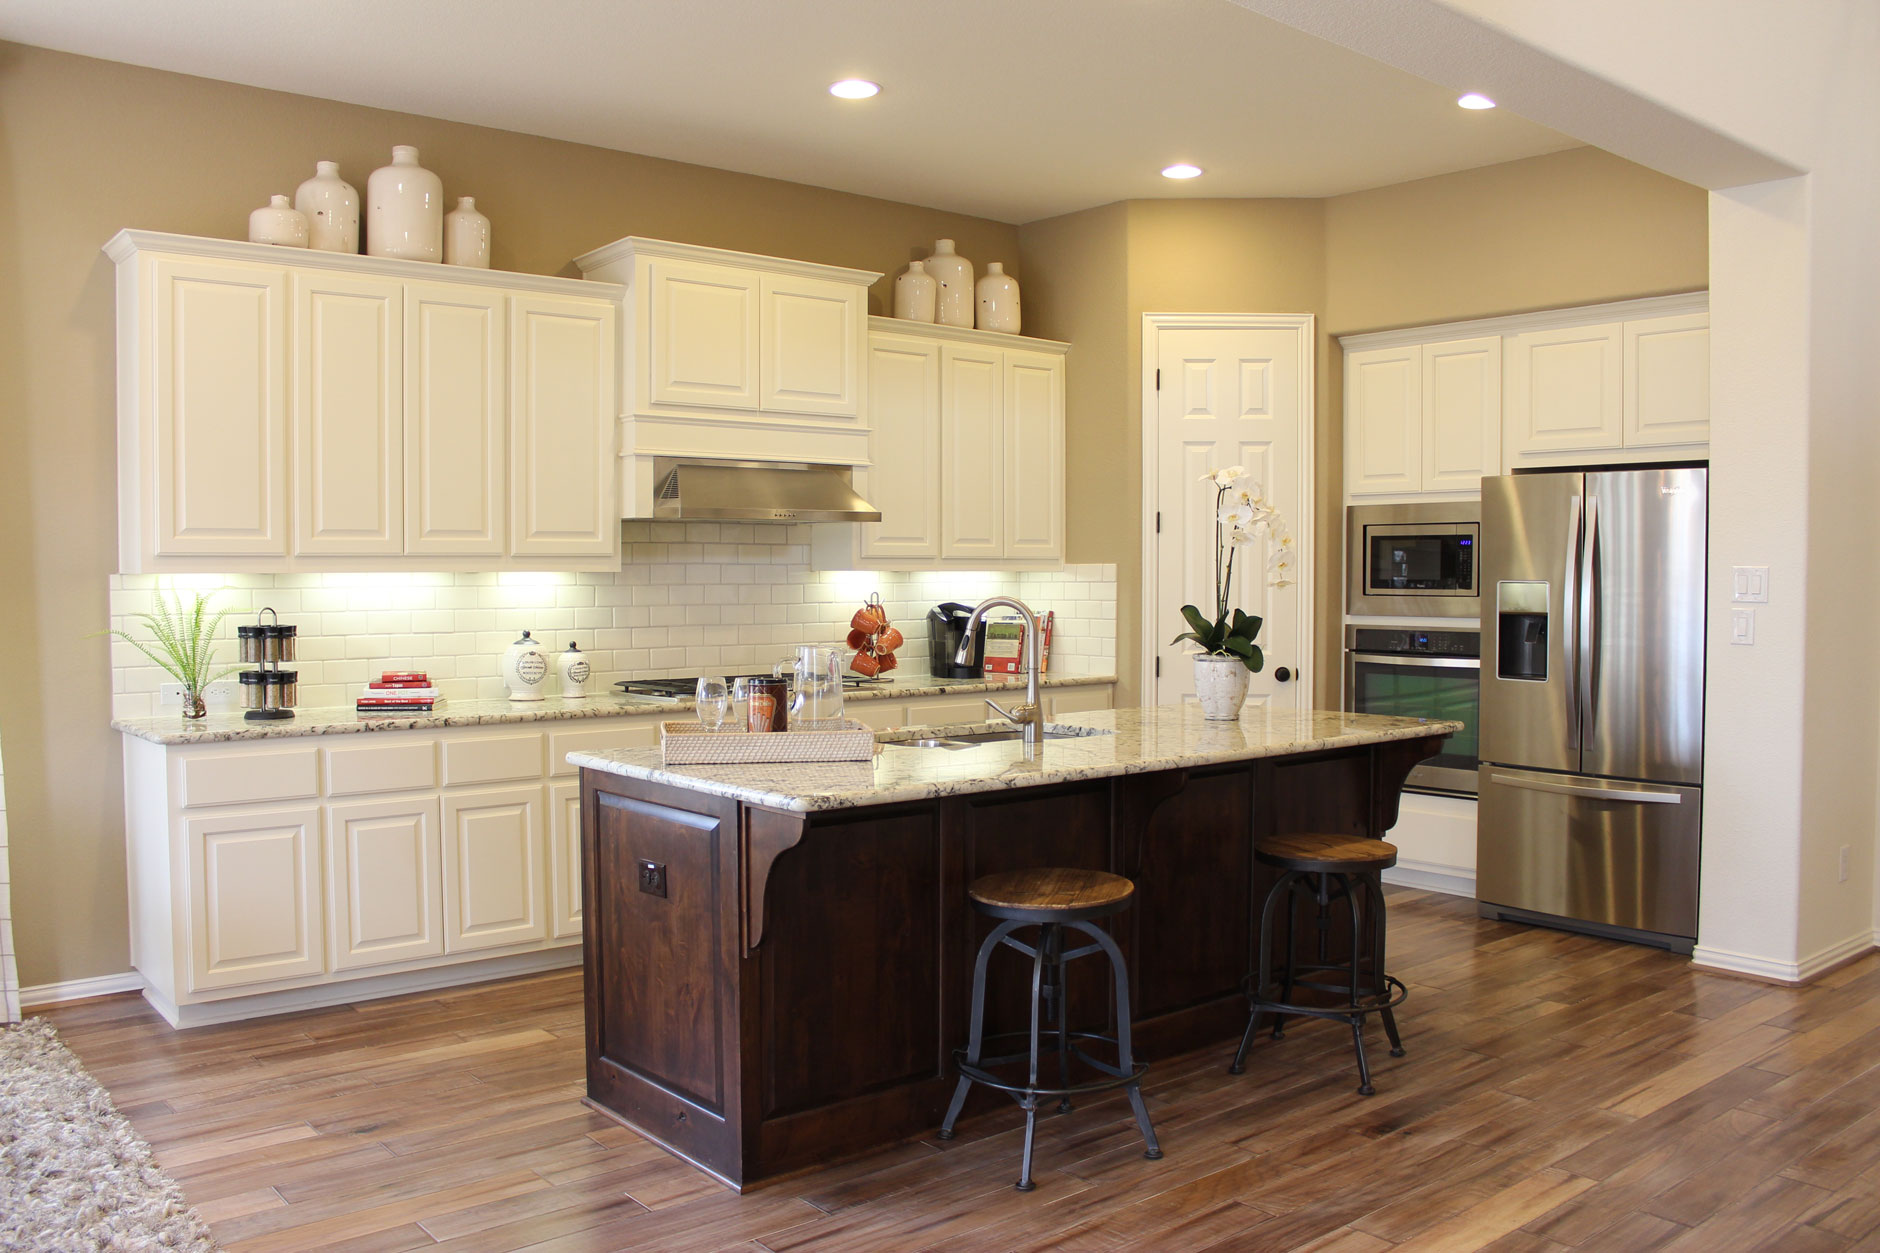 choose flooring that compliments cabinet color - burrows cabinets